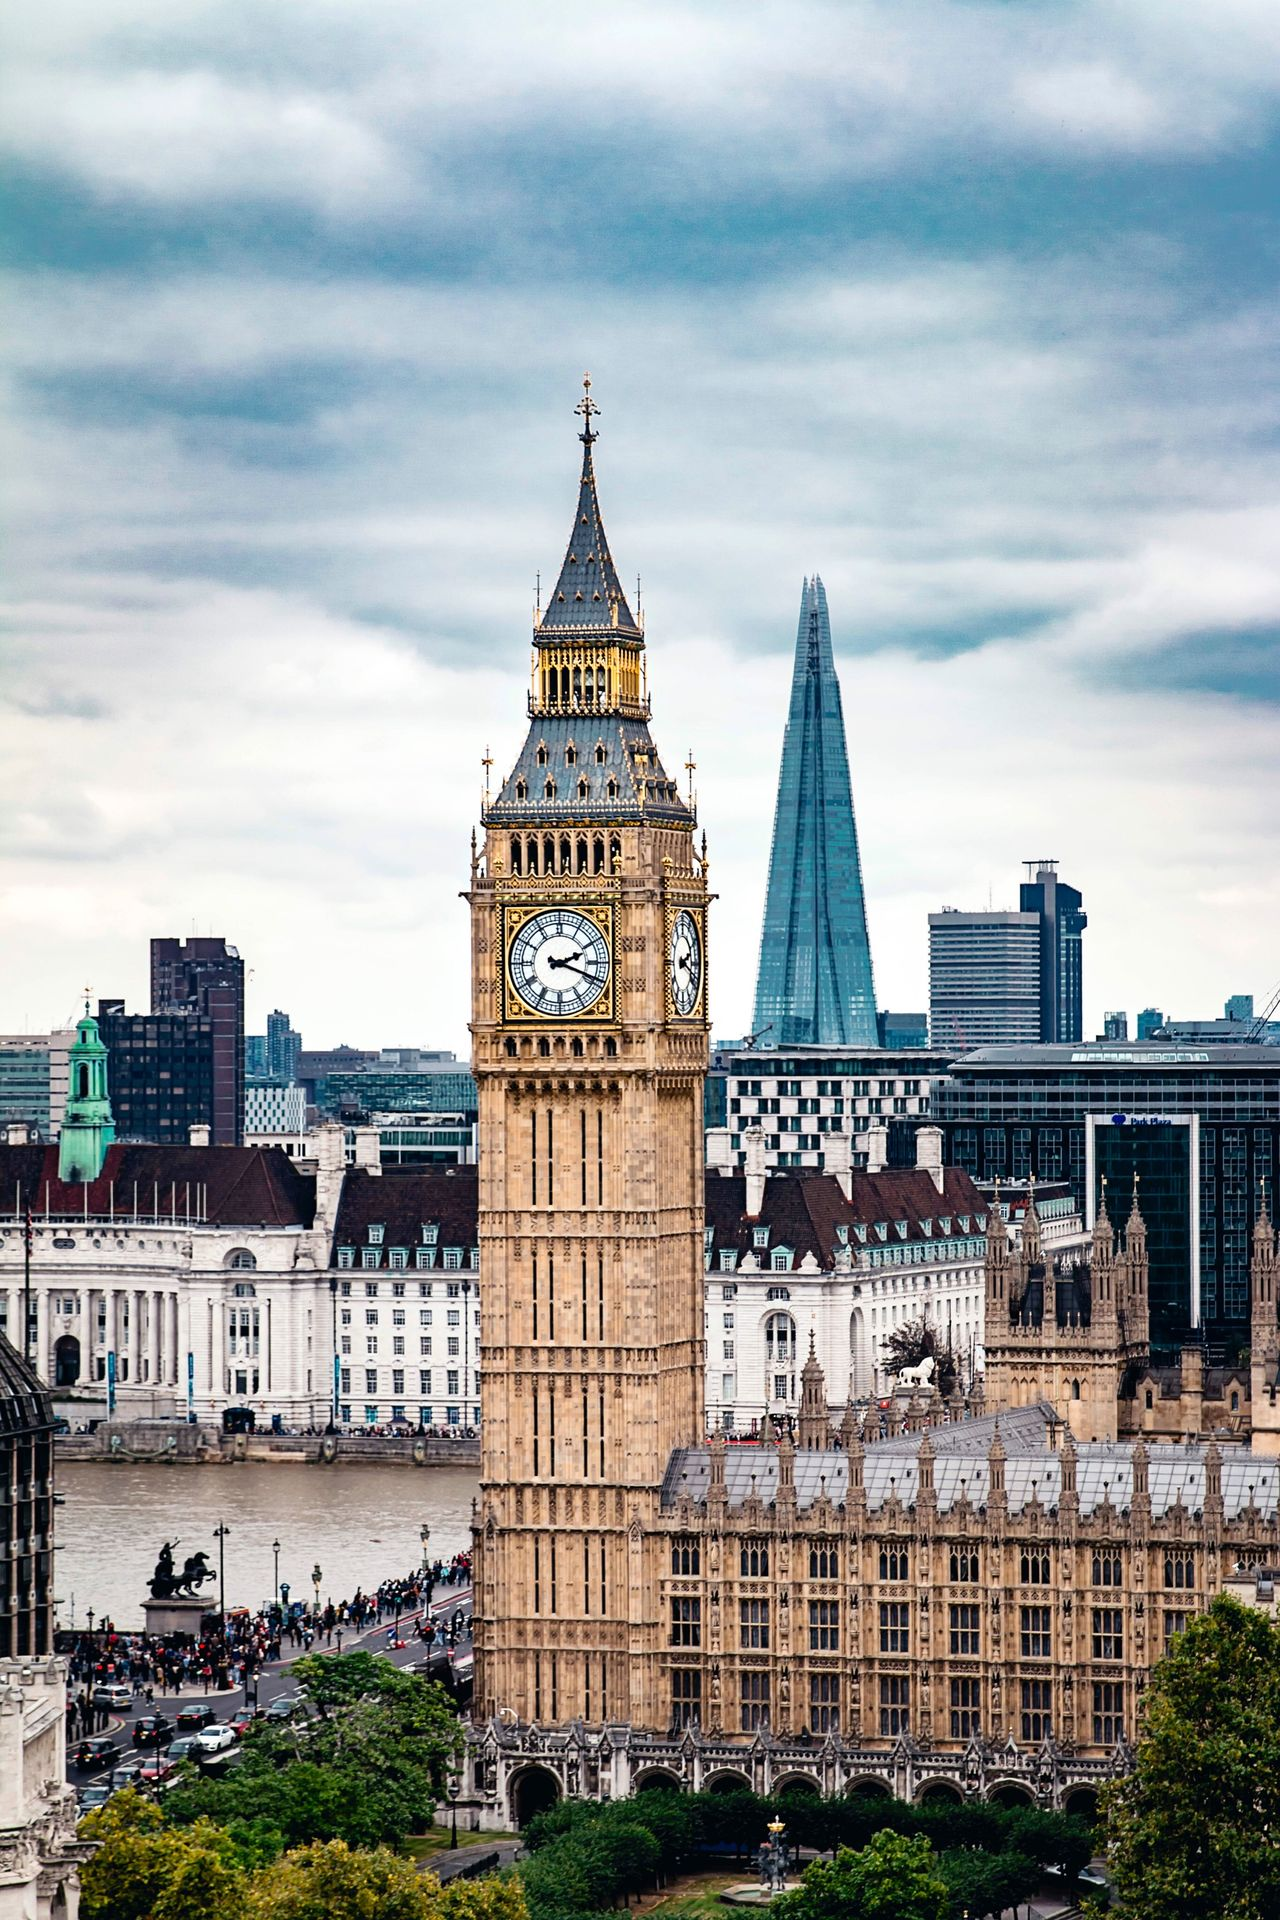 Architecture Sky Cloud - Sky Built Structure Building Exterior Travel Destinations Outdoors Day No People City Low Angle View Clock Tower Cityscape London